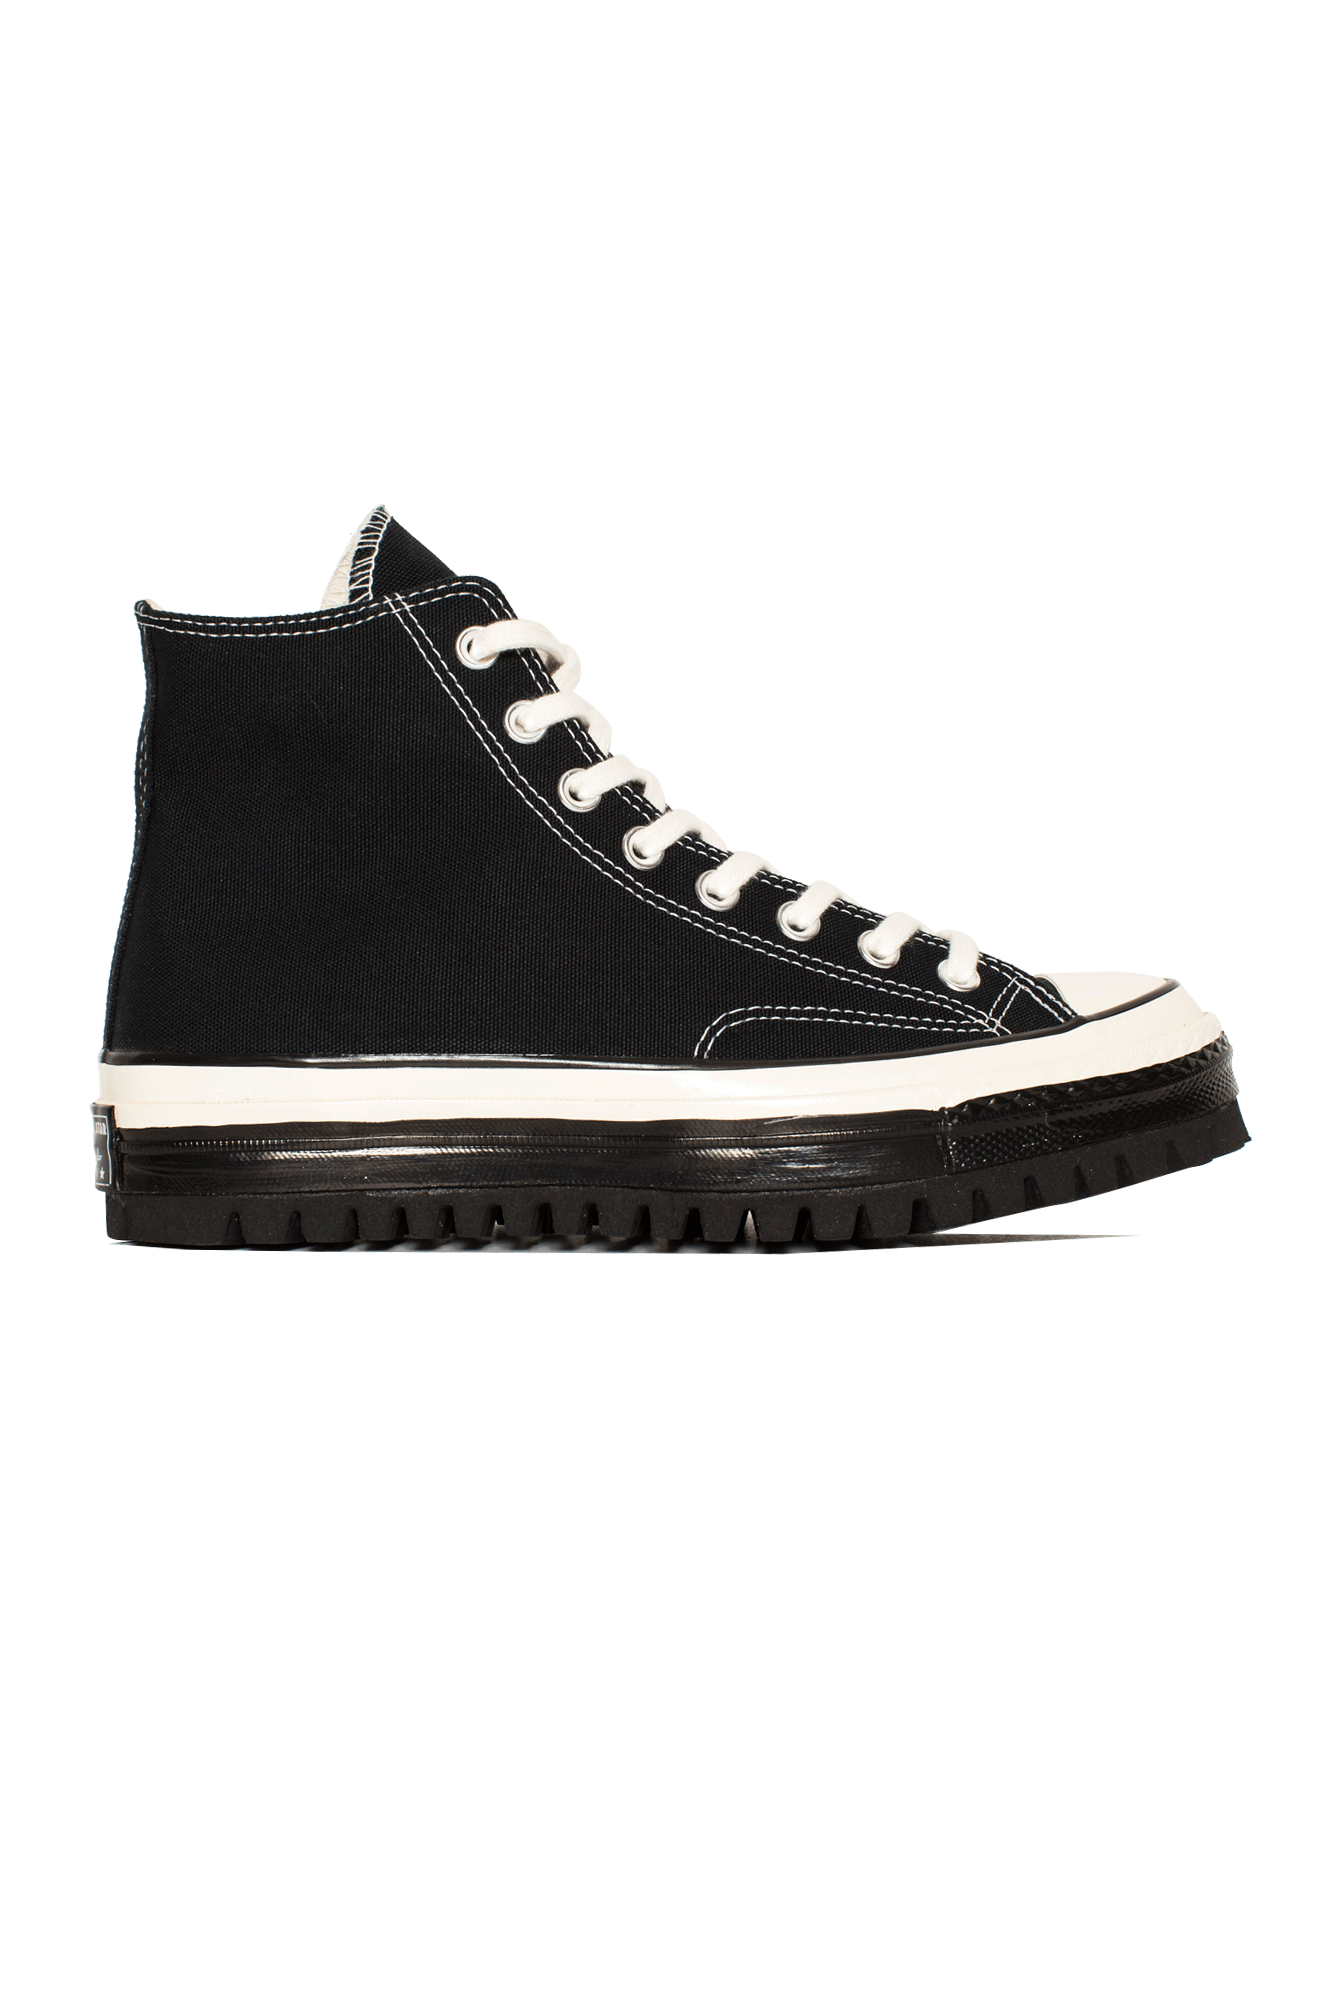 Converse Sneakers Chuck 70 Canvas Trek LDT HI Nero 169144C#000#001#5 - One Block Down